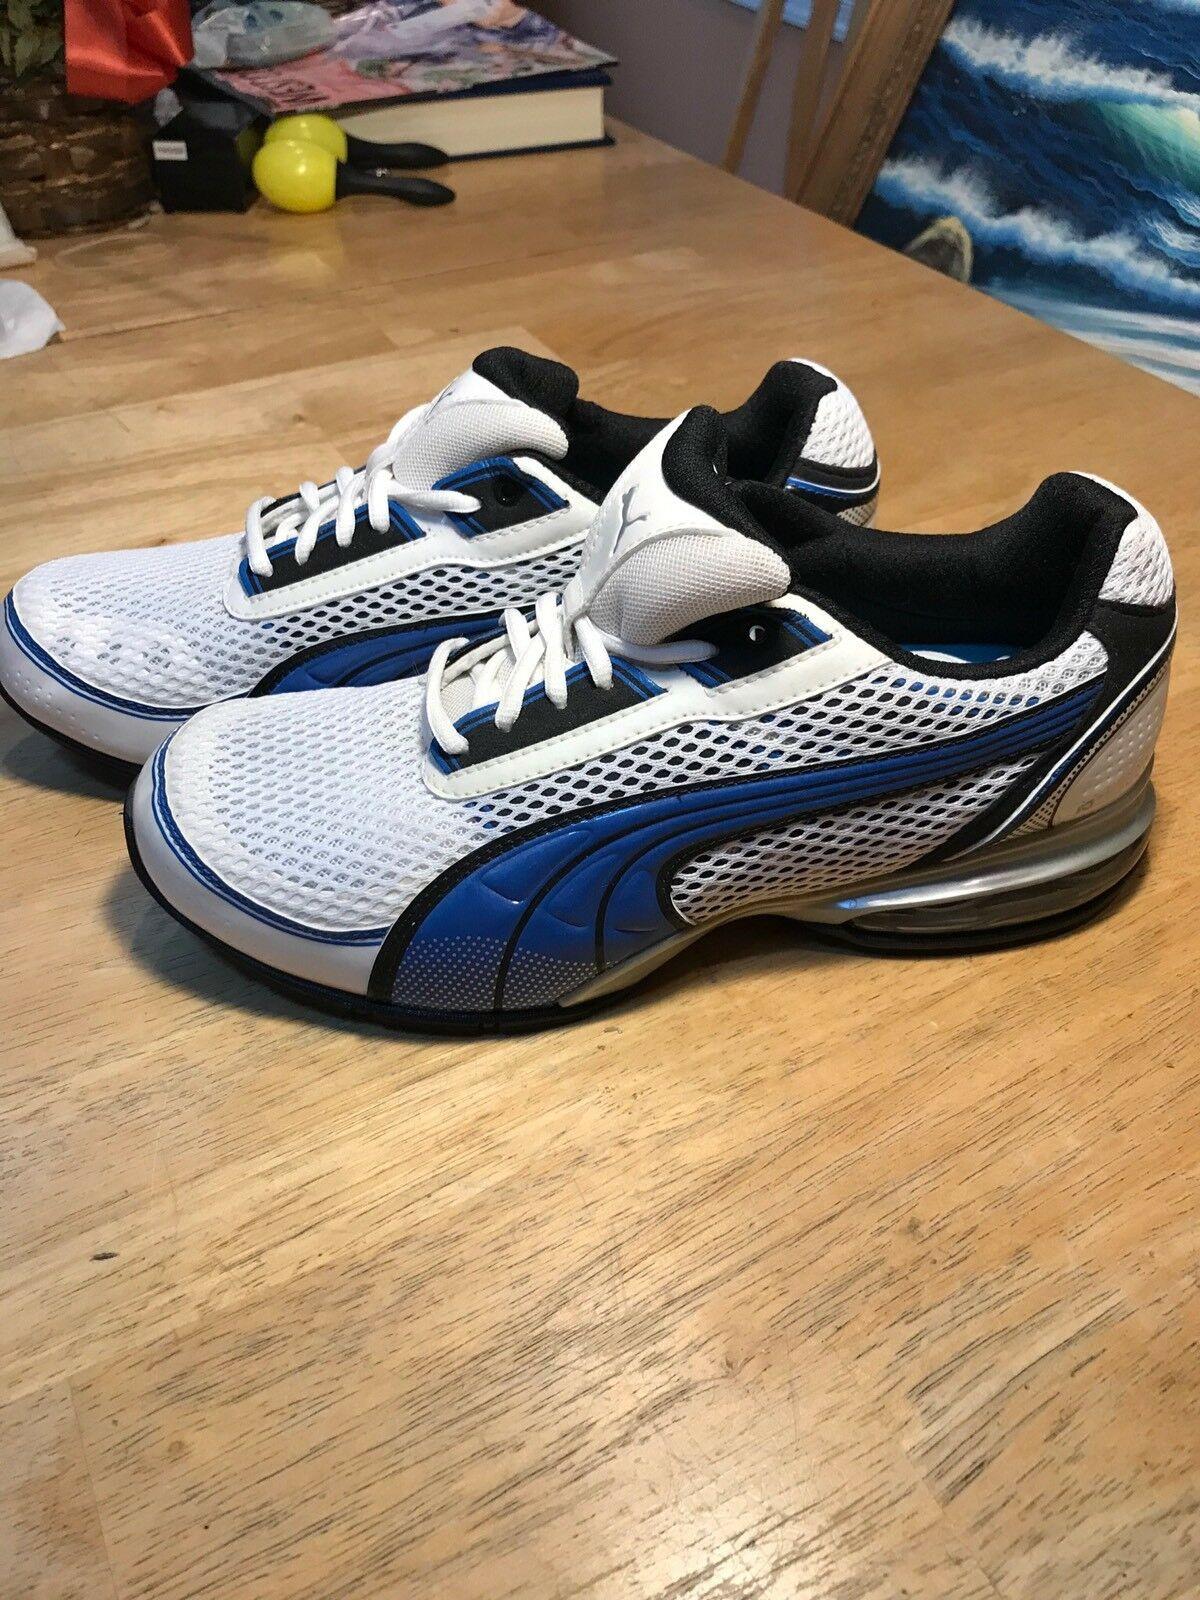 New PUMA Running shoes, Size 9